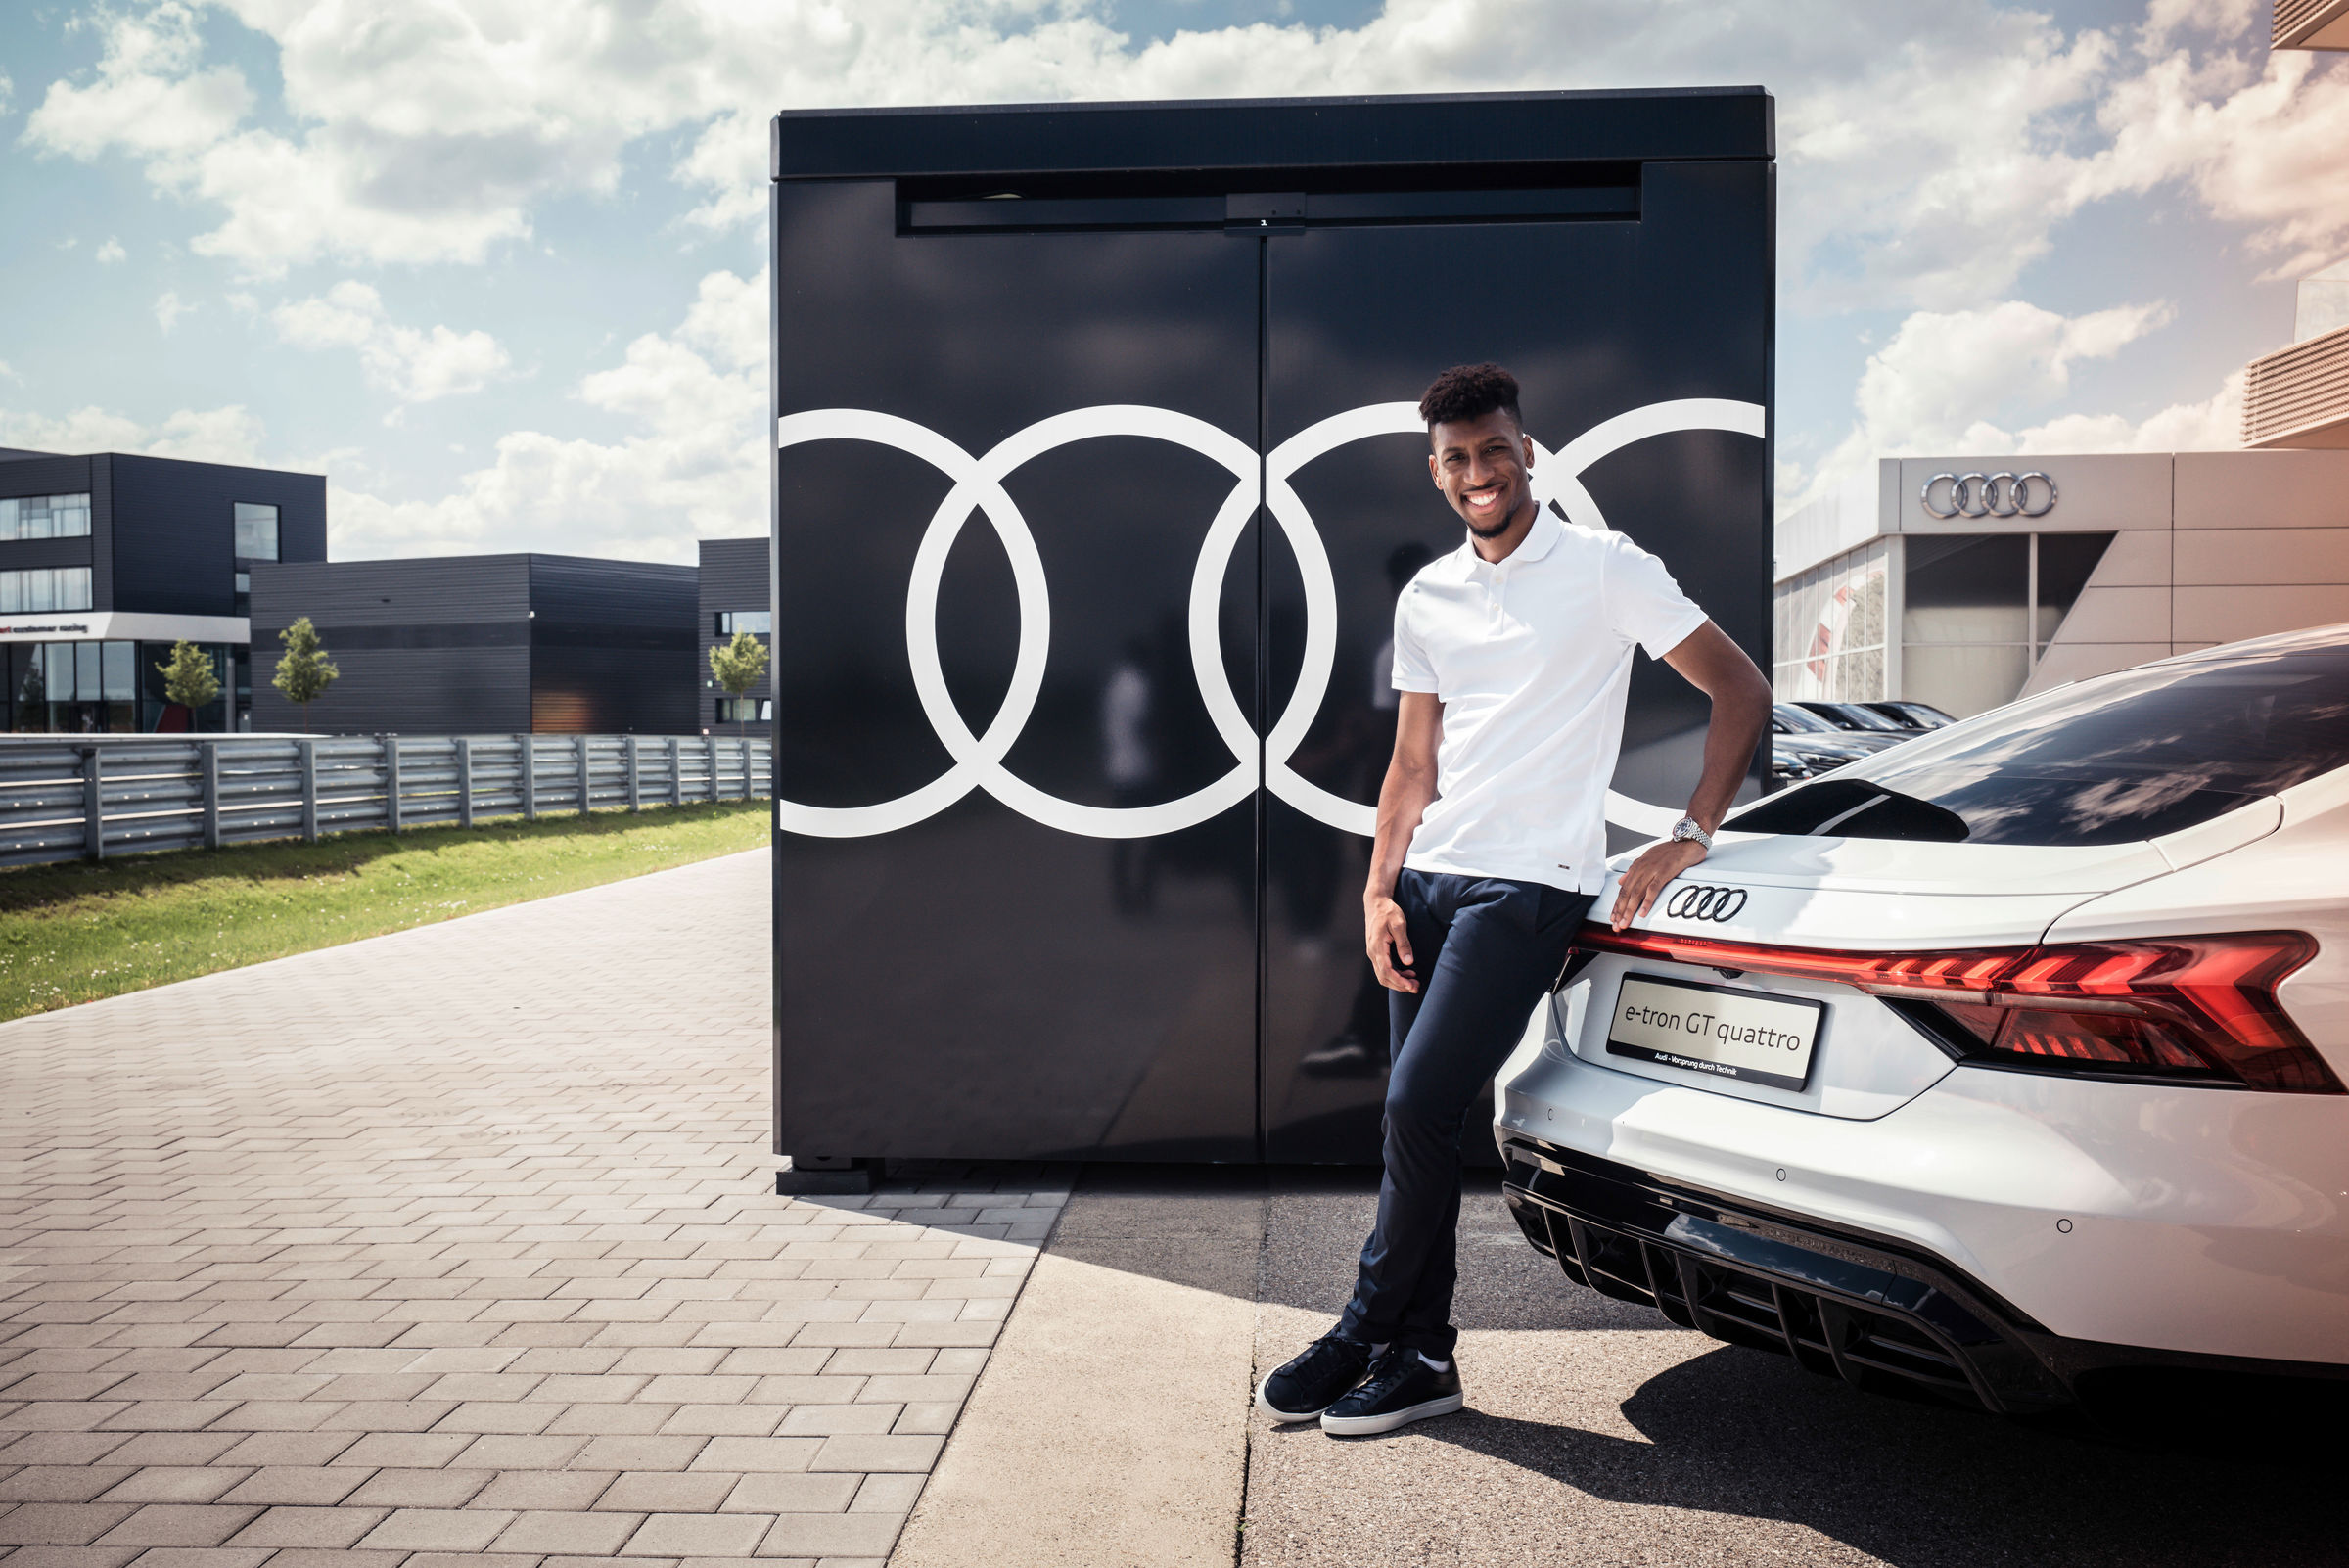 Electrification 2.0: pros from FC Bayern receive Audi e-tron GT - Image 3